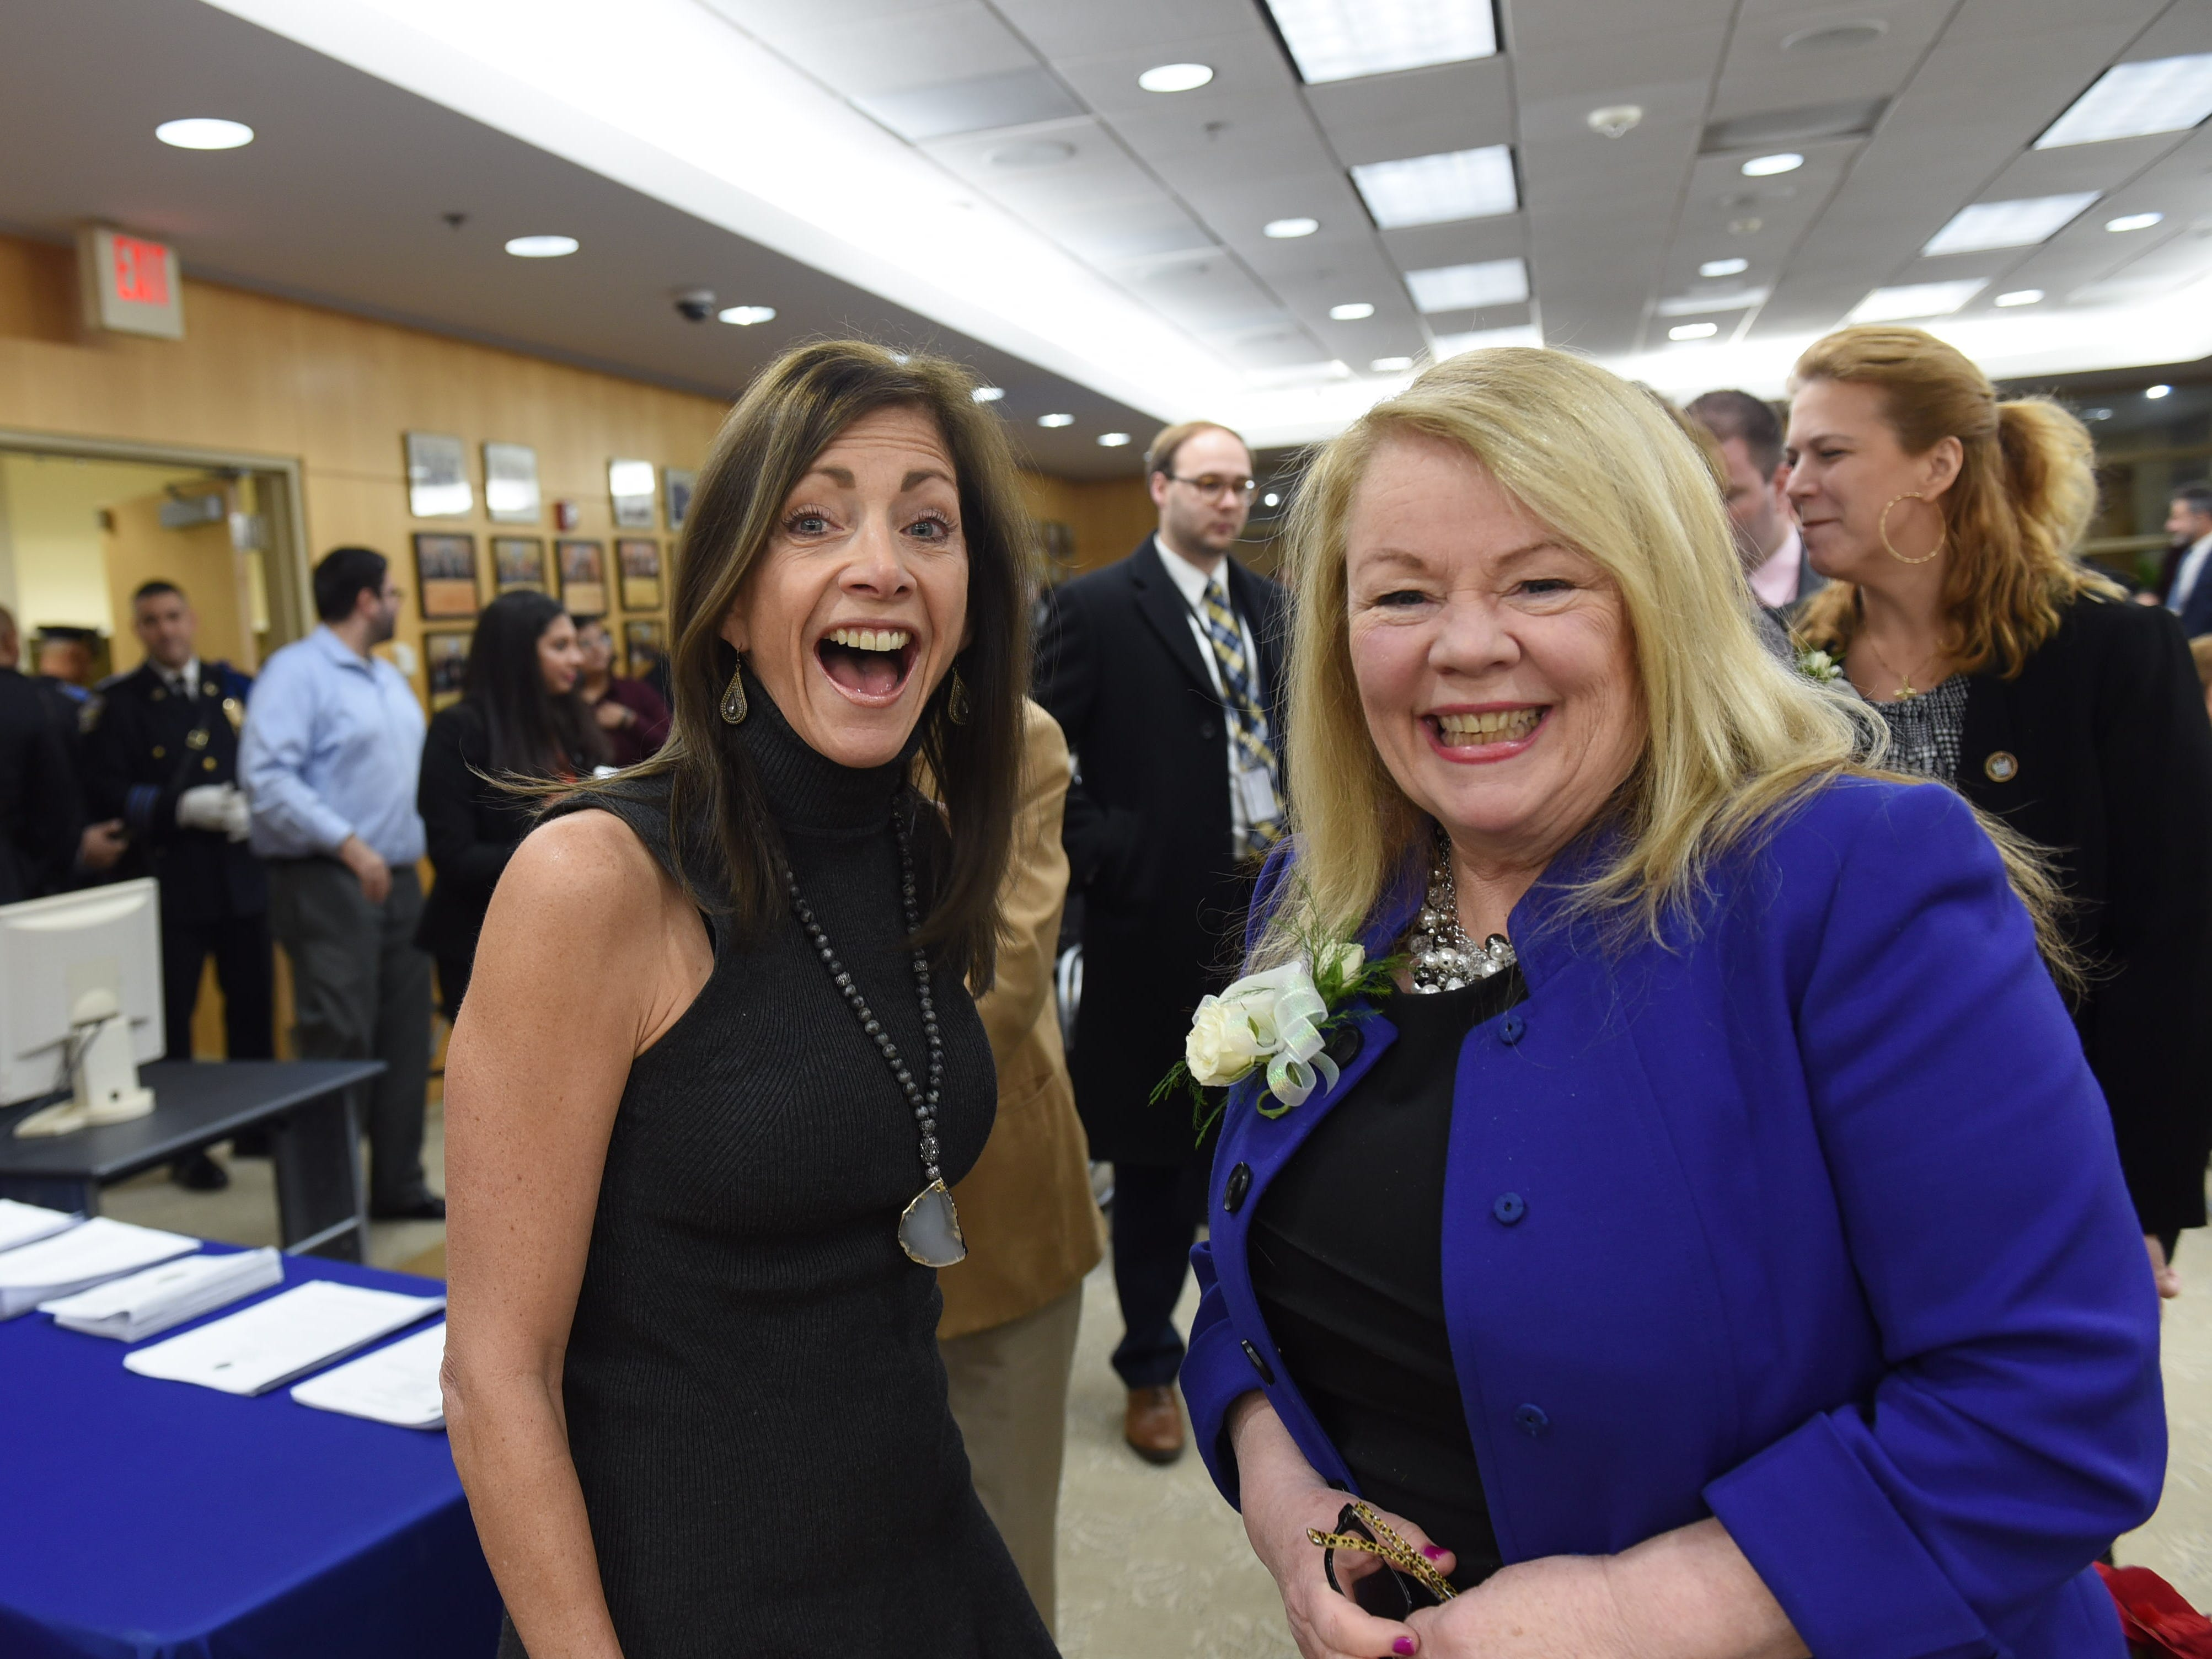 Mary Amoroso (R), who is named as Vice-Chairwoman, shares a laugh with New Jersey First Lady Tammy Snyder Murphy prior to the annual Bergen County freeholder board's reorganization meeting at Bergen County Plaza in Hackensack on 01/07/19.